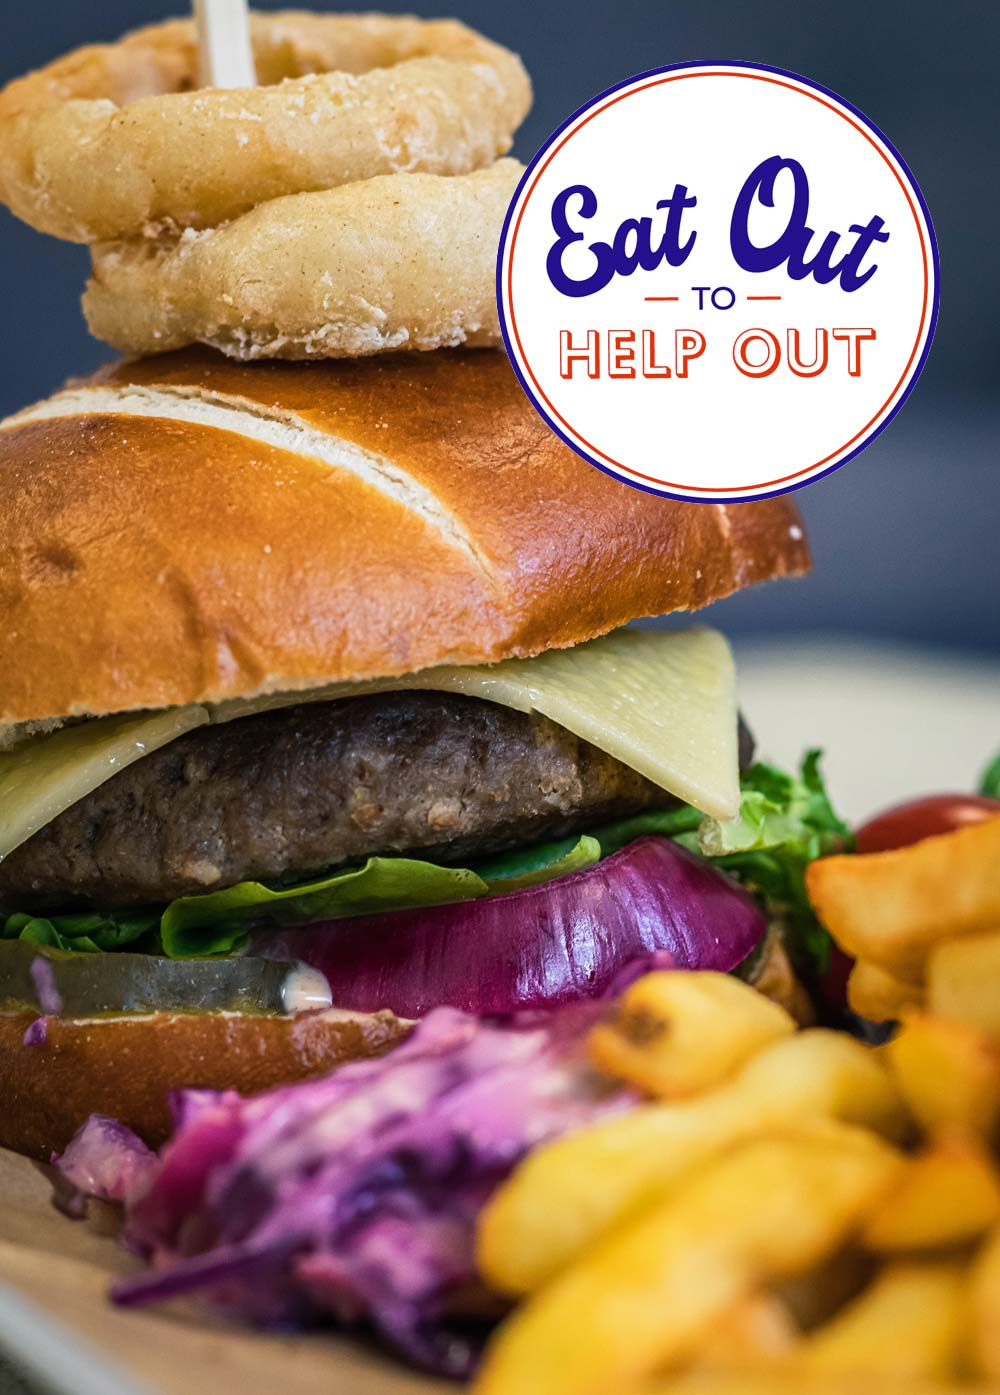 Delicious Eat Out to Help Out Burger